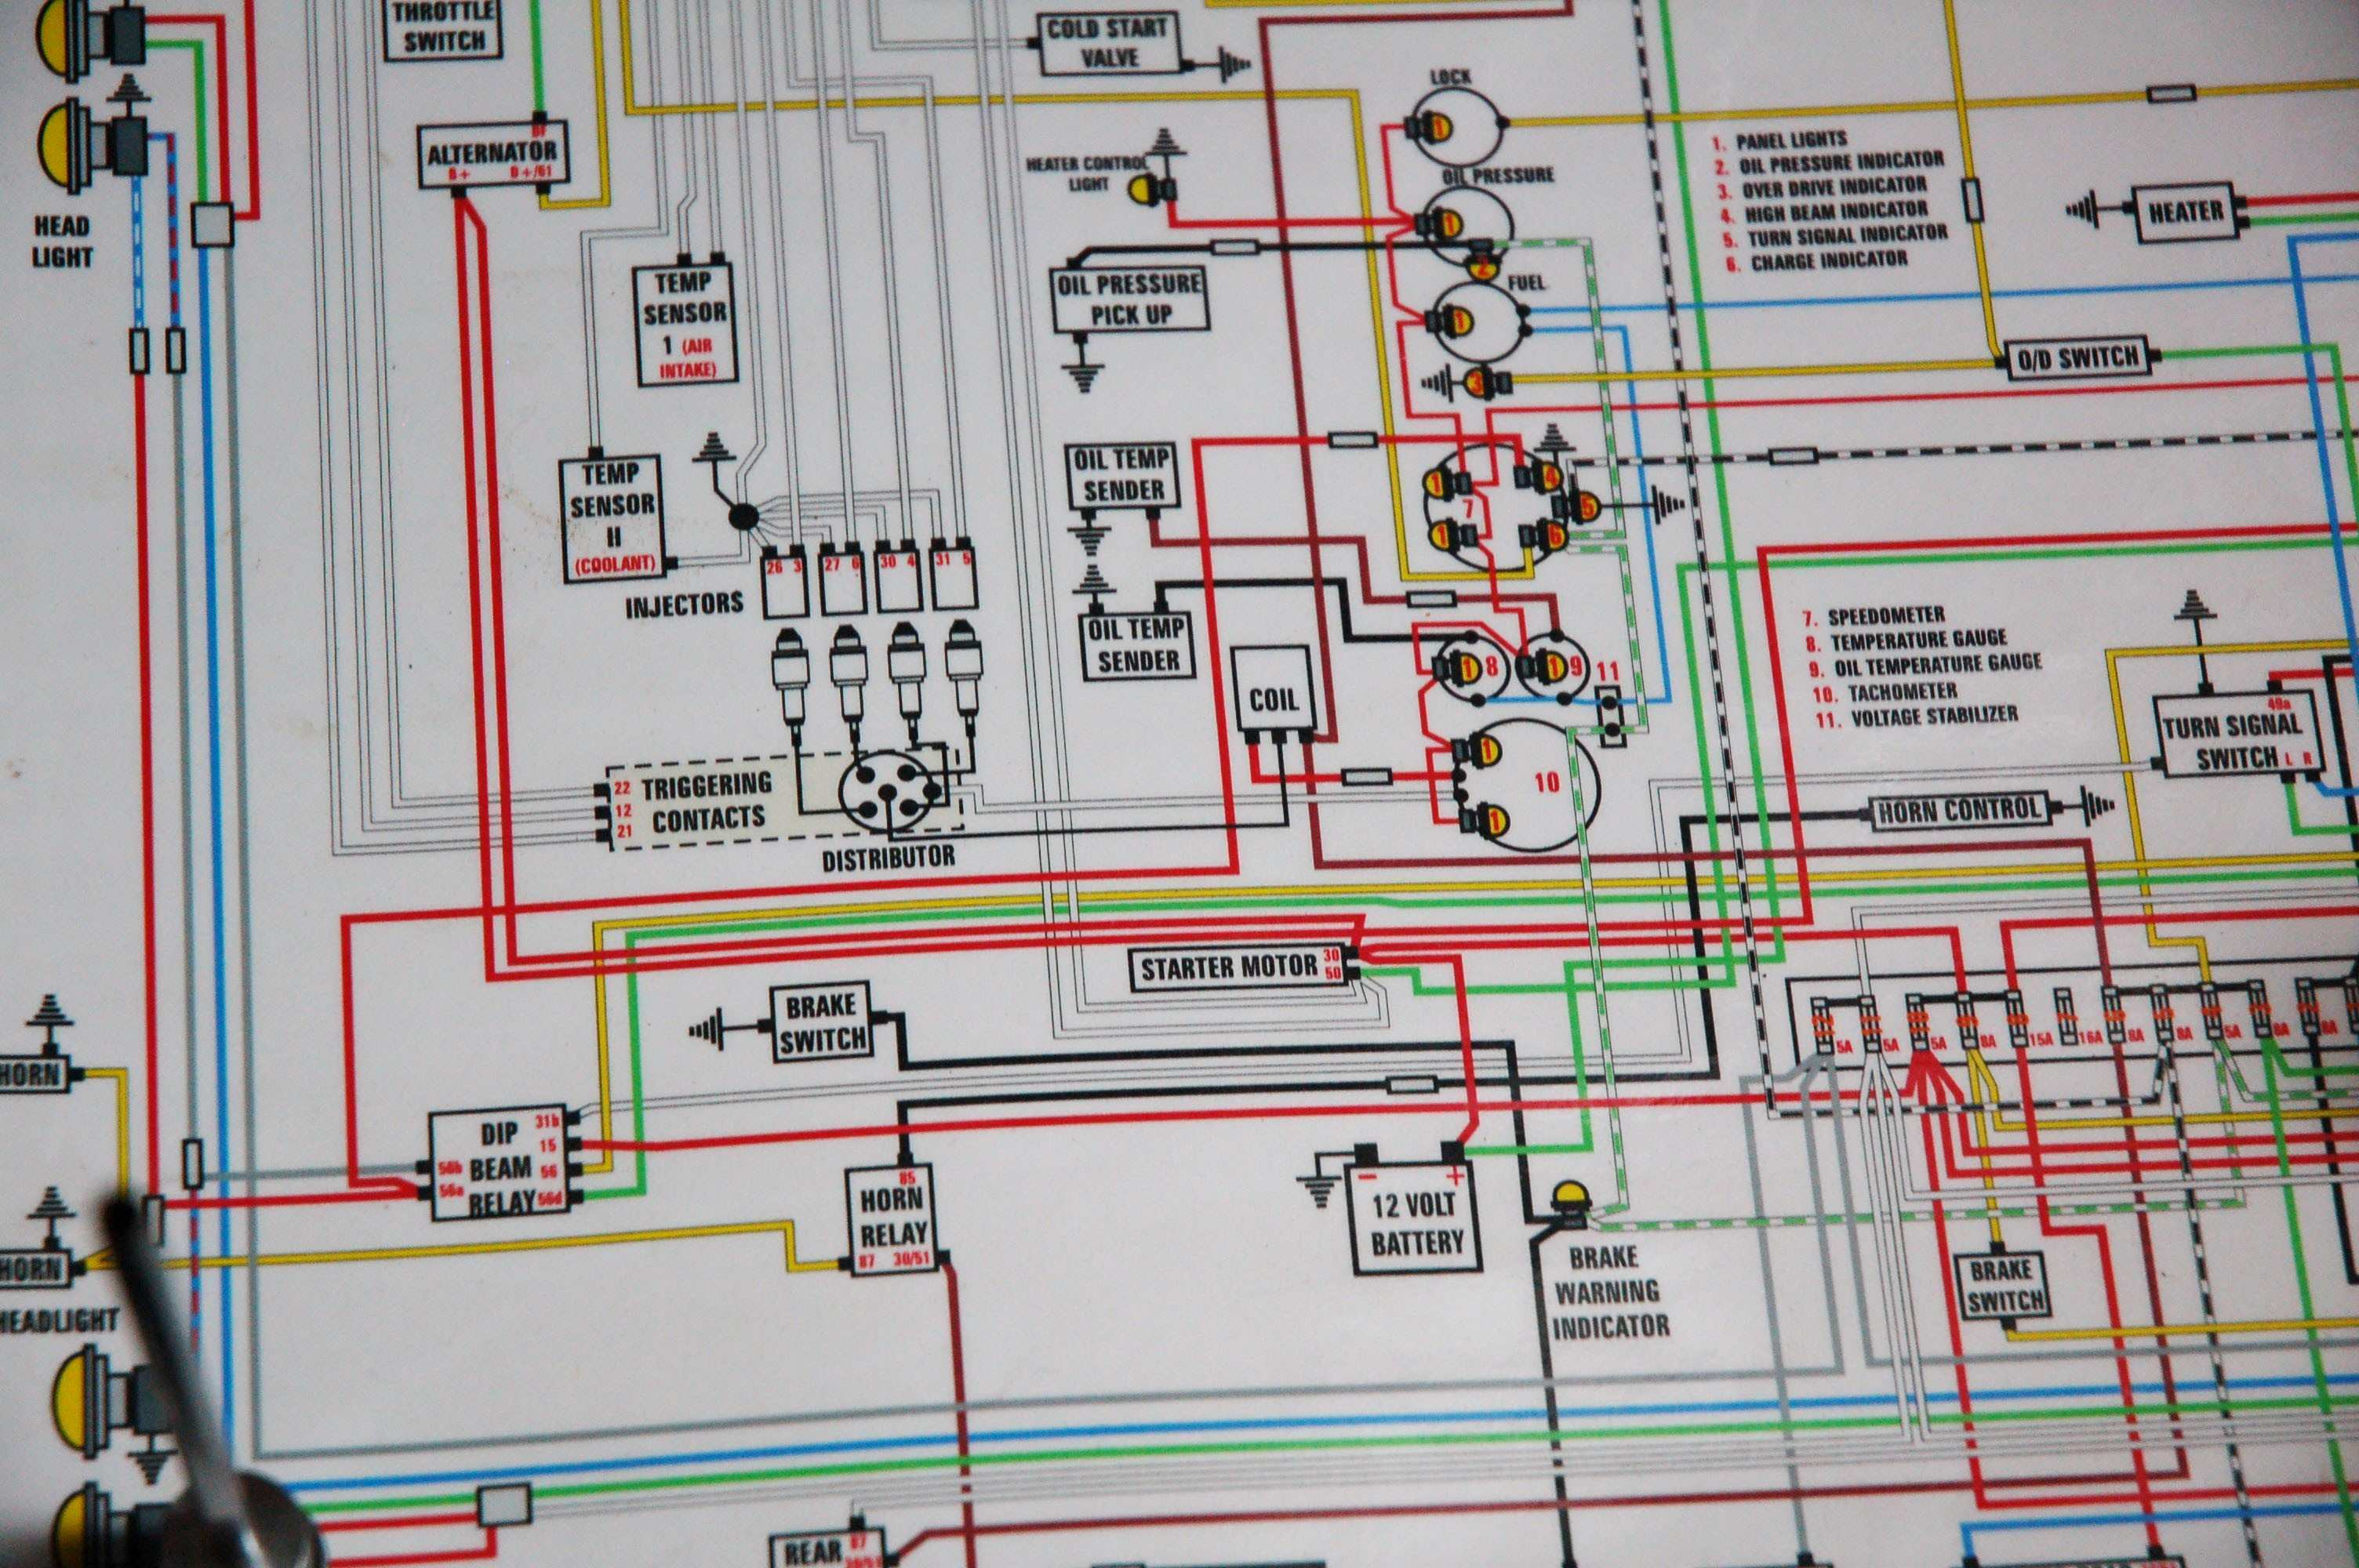 painless wiring switch panel diagram gallery 1957 chevy painless wiring diagram 1957 chevy dash wiring diagram #11